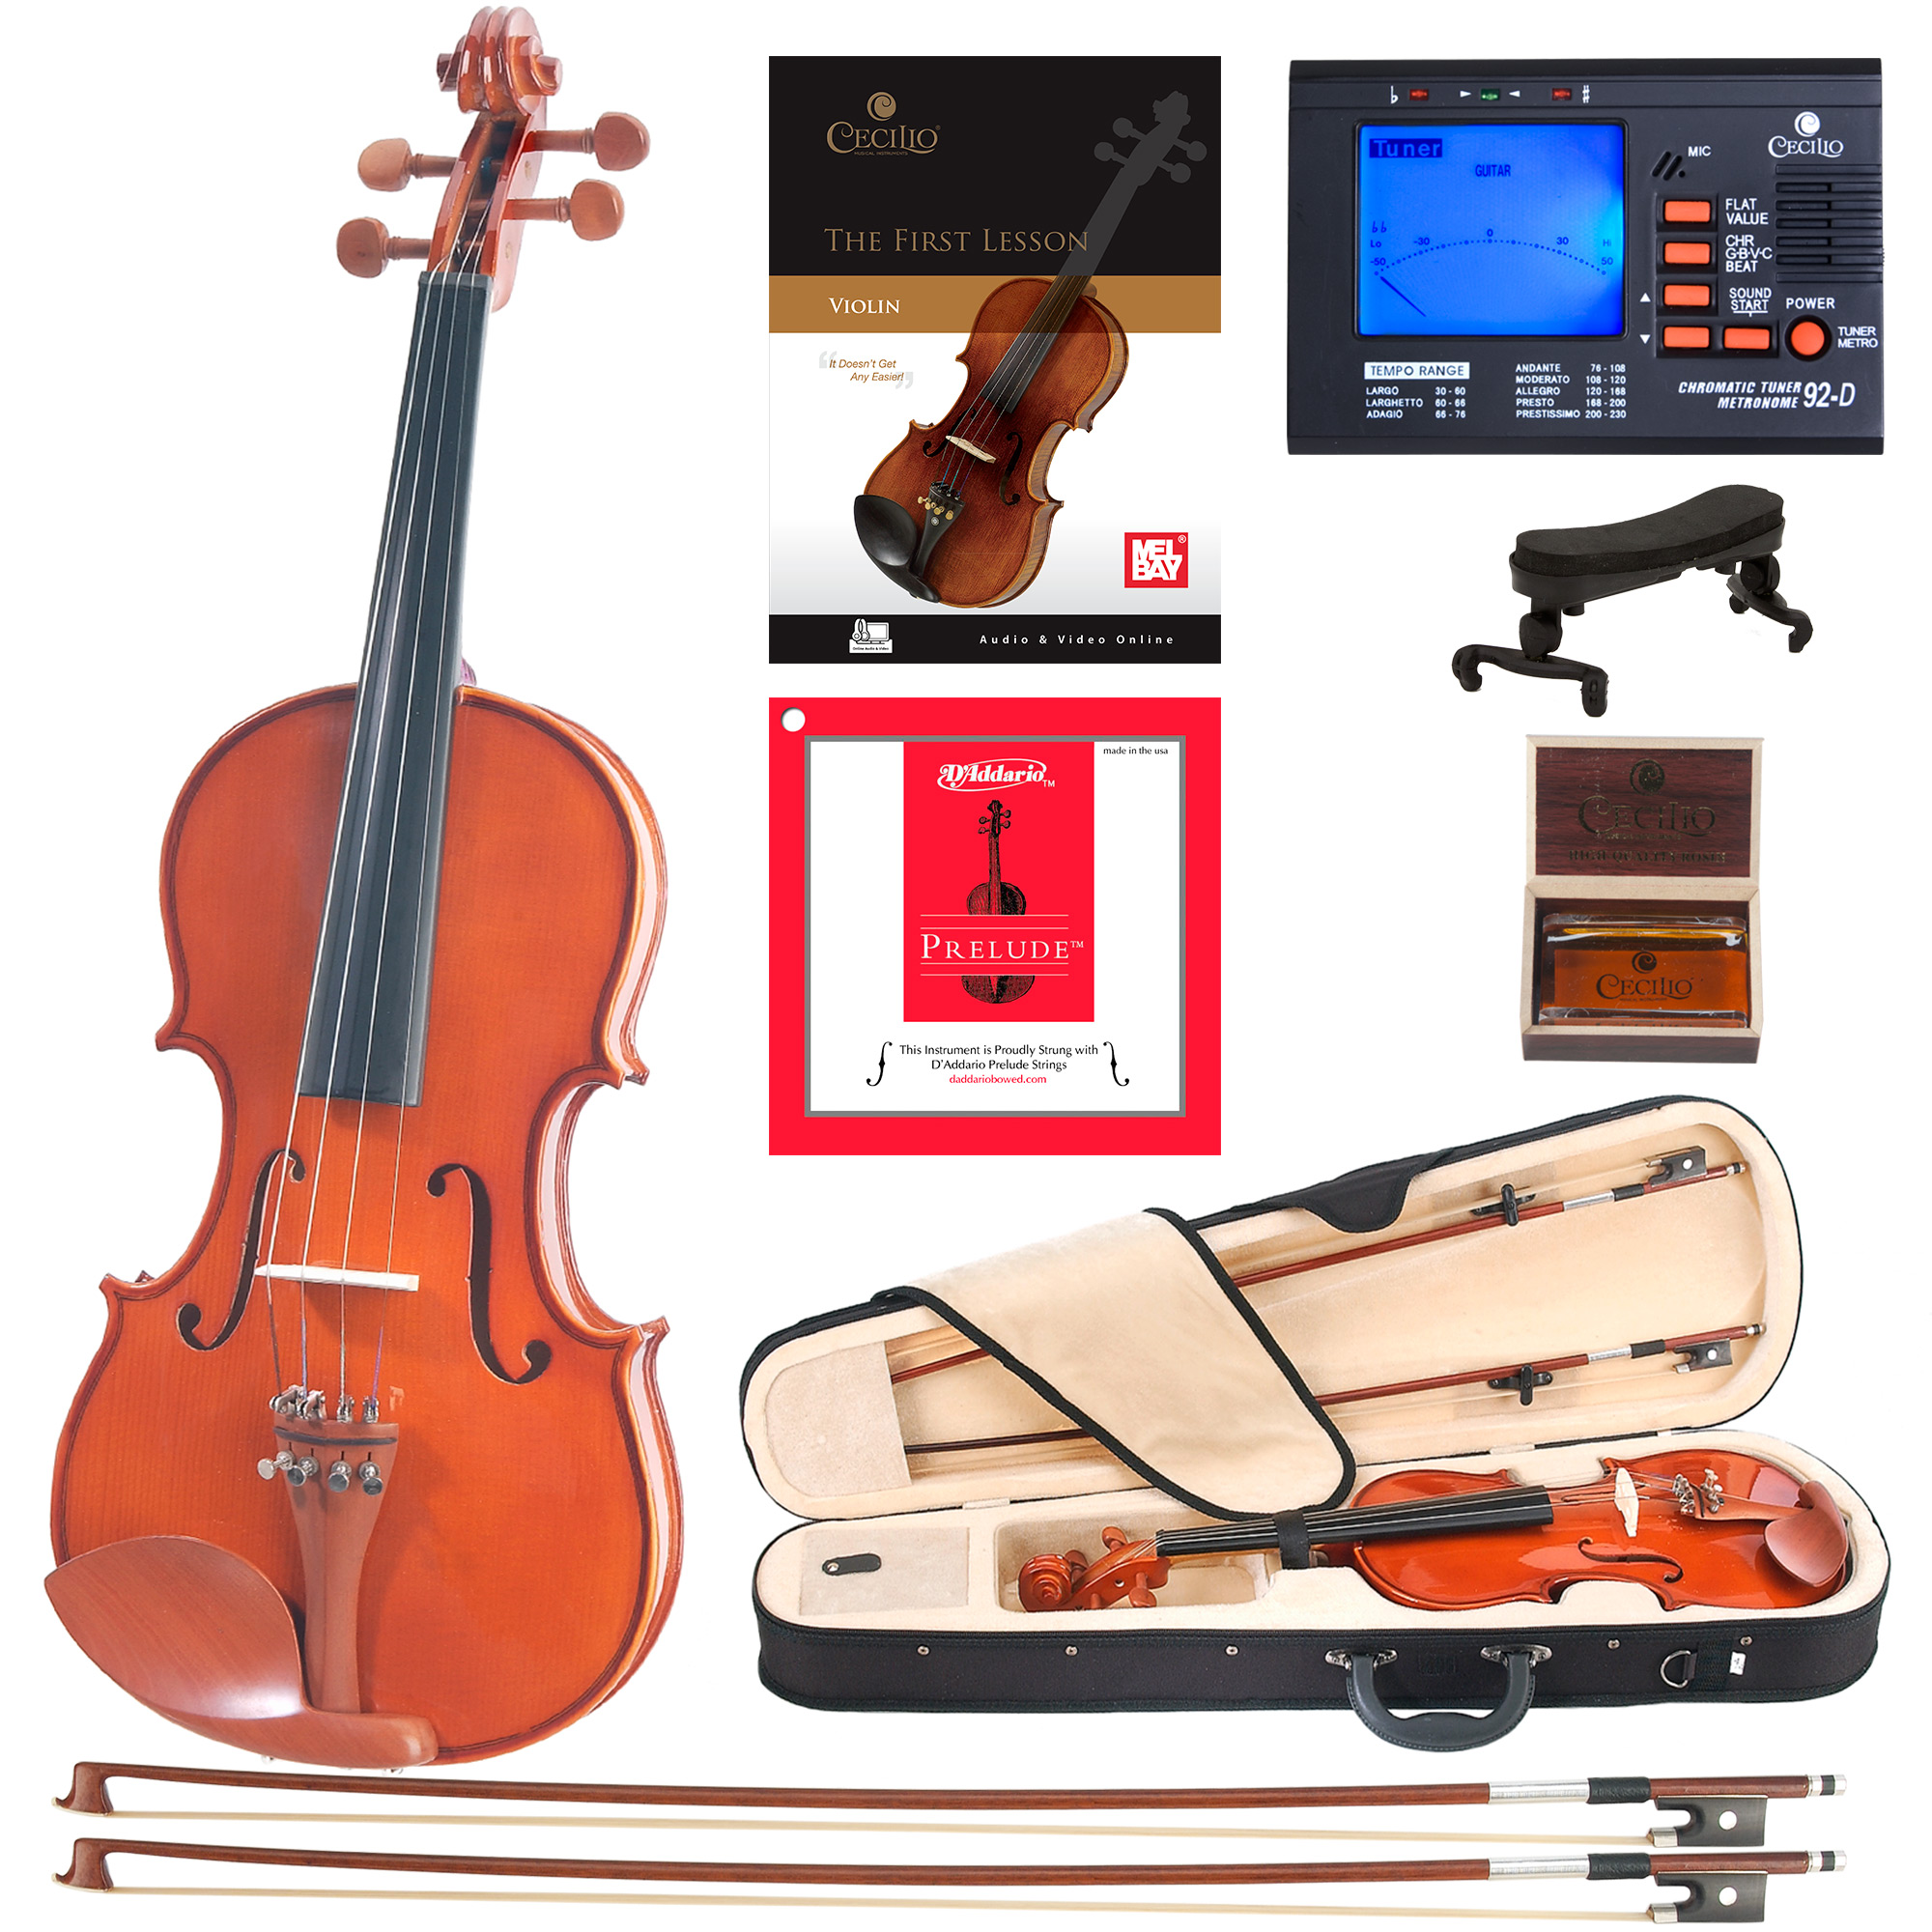 Cecilio Full Size 4/4 CVN-200 Solid Wood Violin with D'Addario Prelude Strings, Lesson